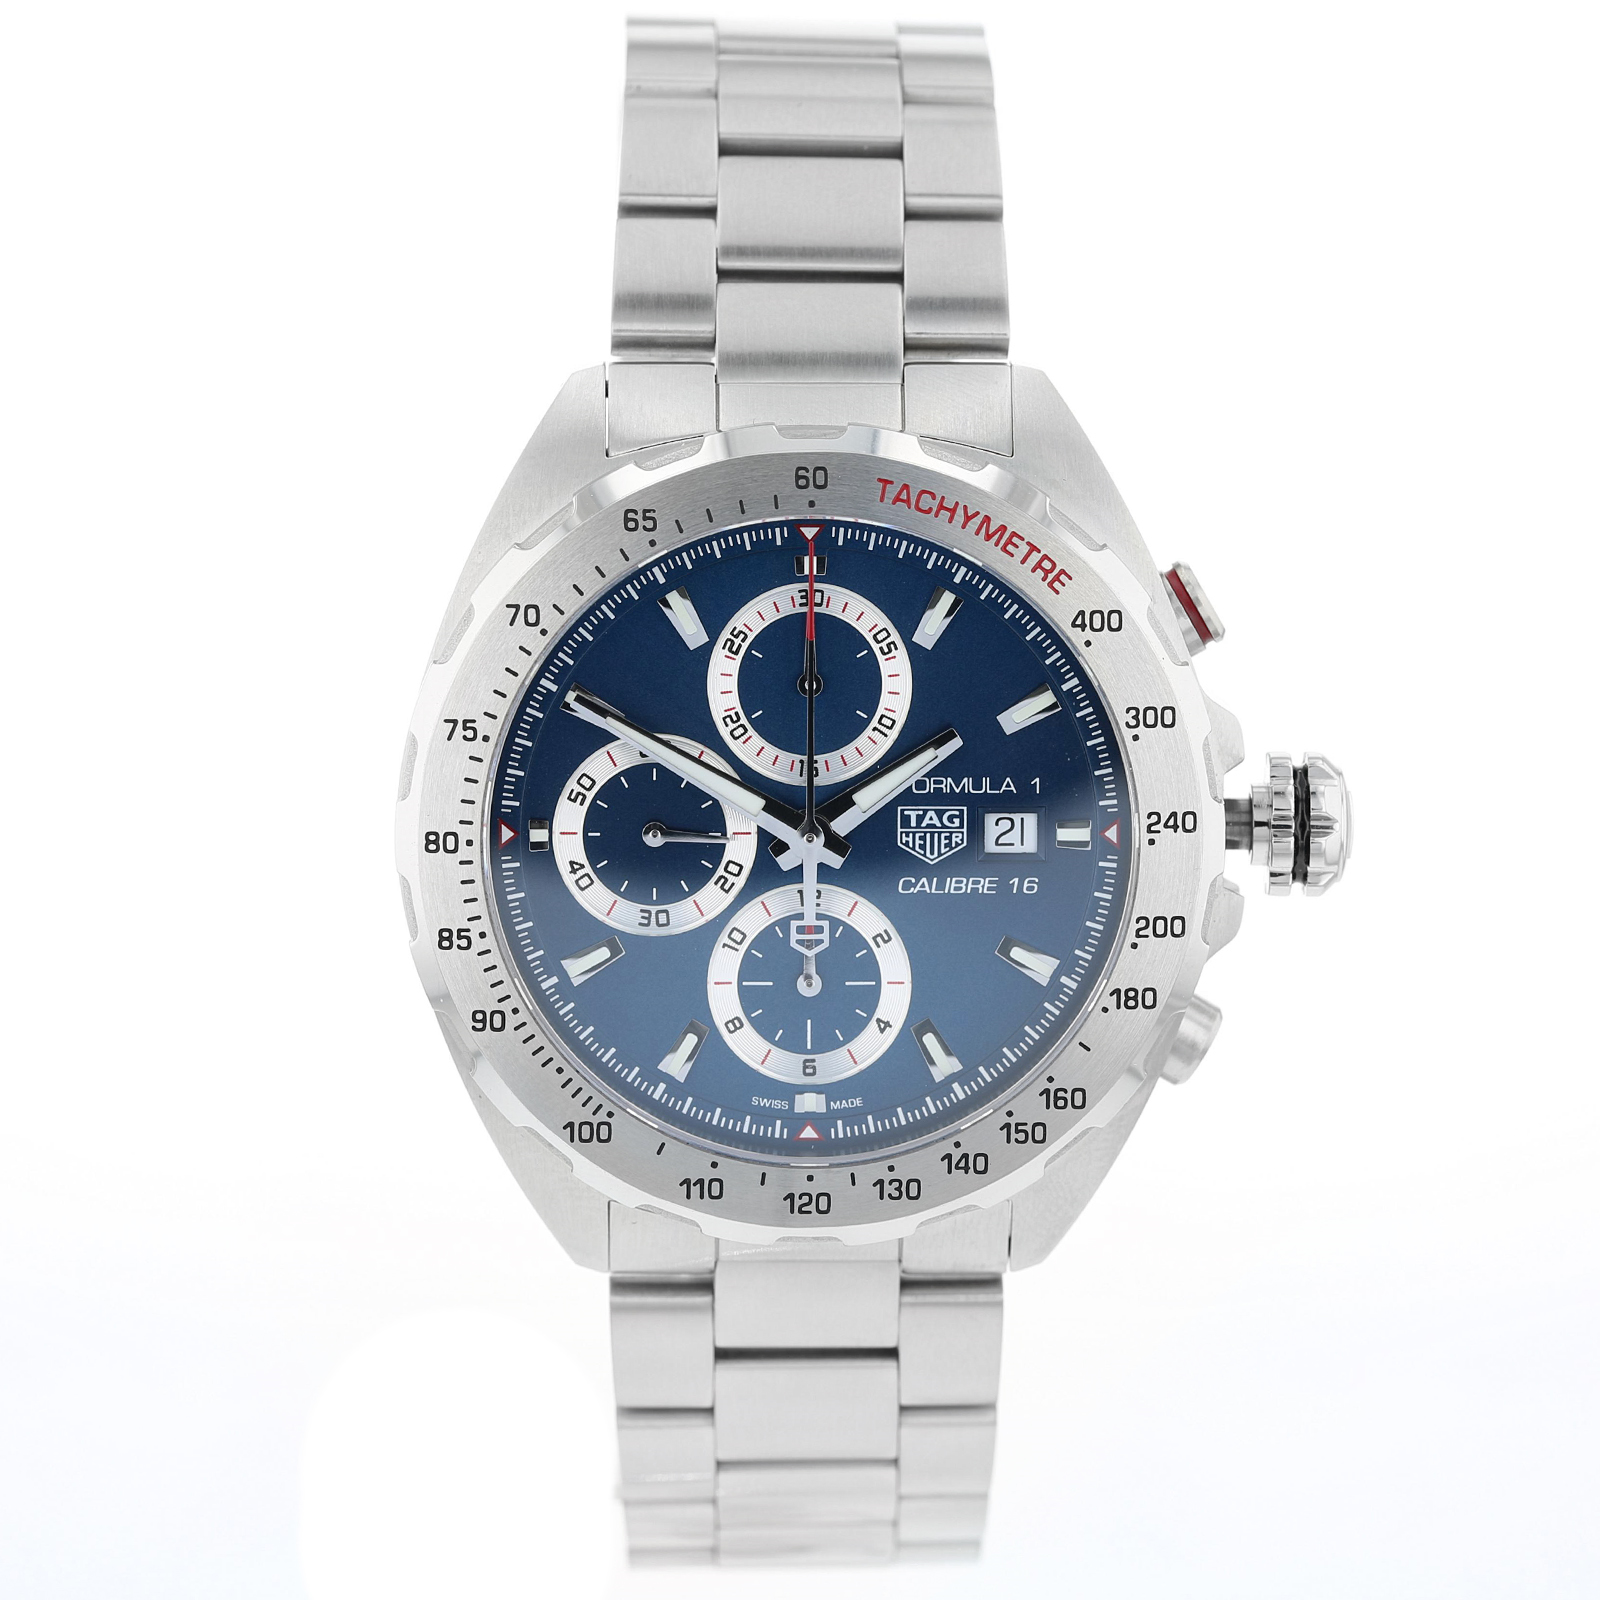 Pre-Owned TAG Heuer Formula 1 Calibre 16 Chronograph Mens Watch